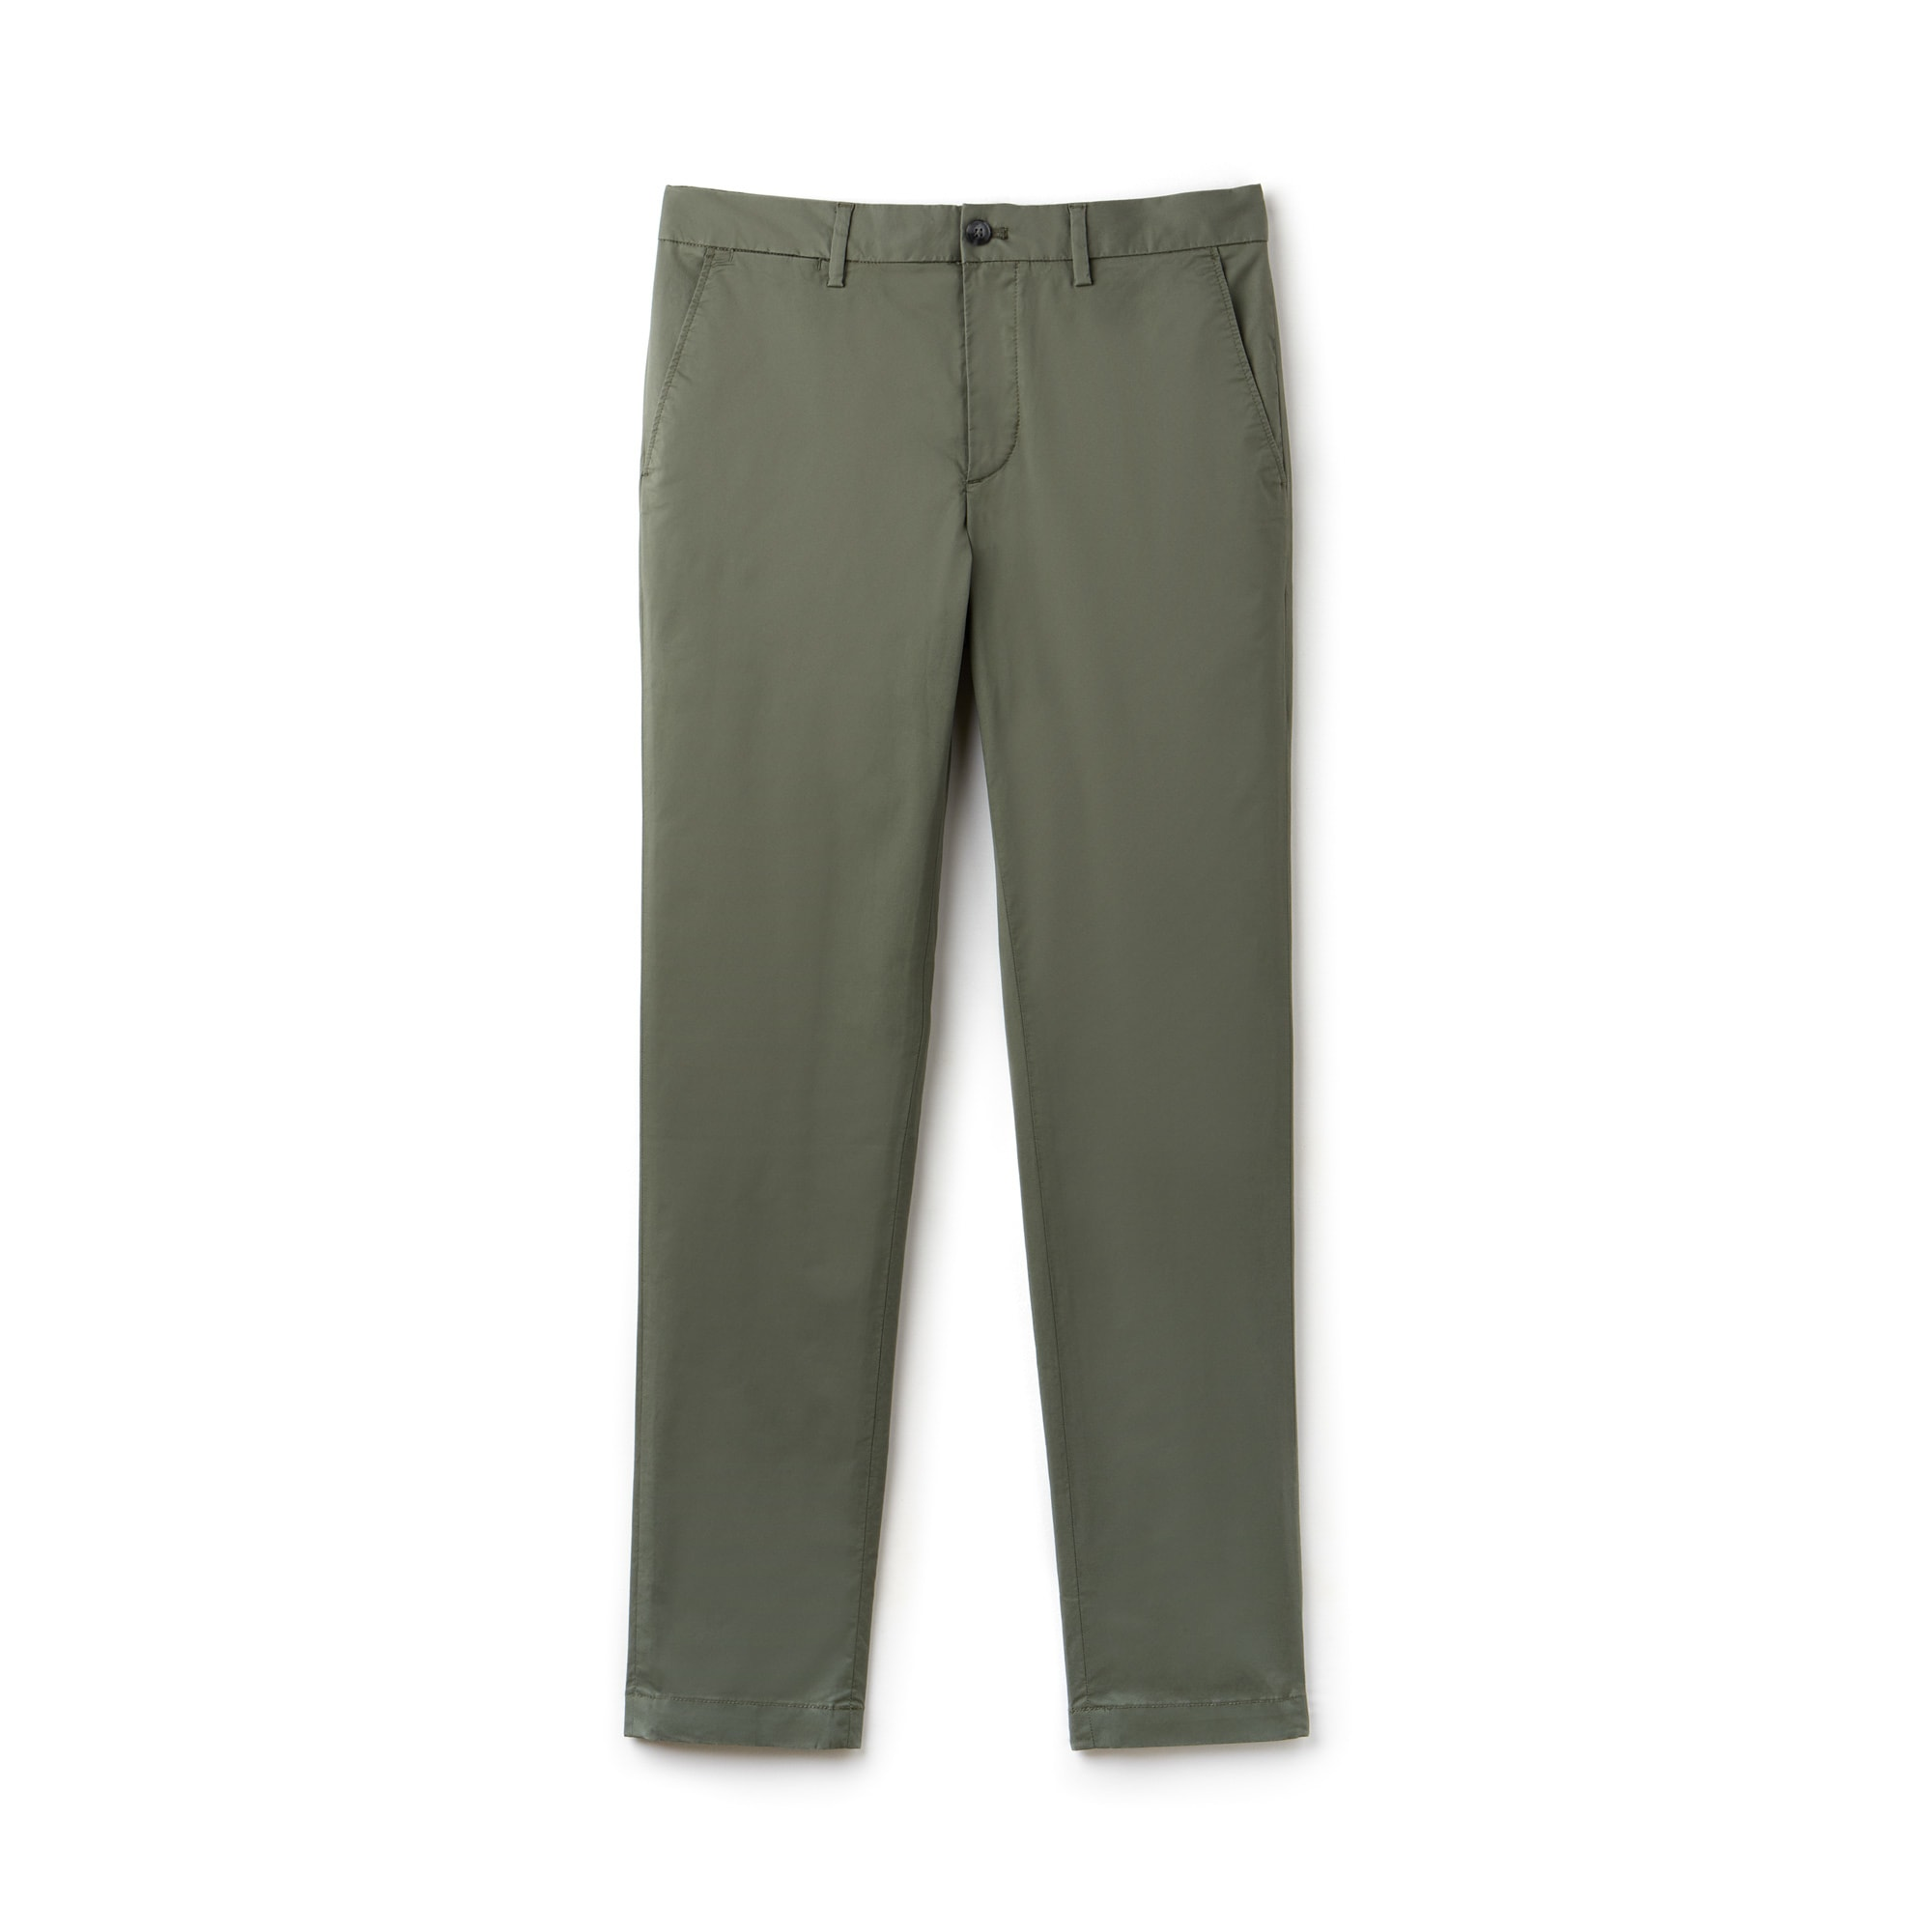 Men's Slim Fit Stretch Pima Cotton Twill Chino Pants